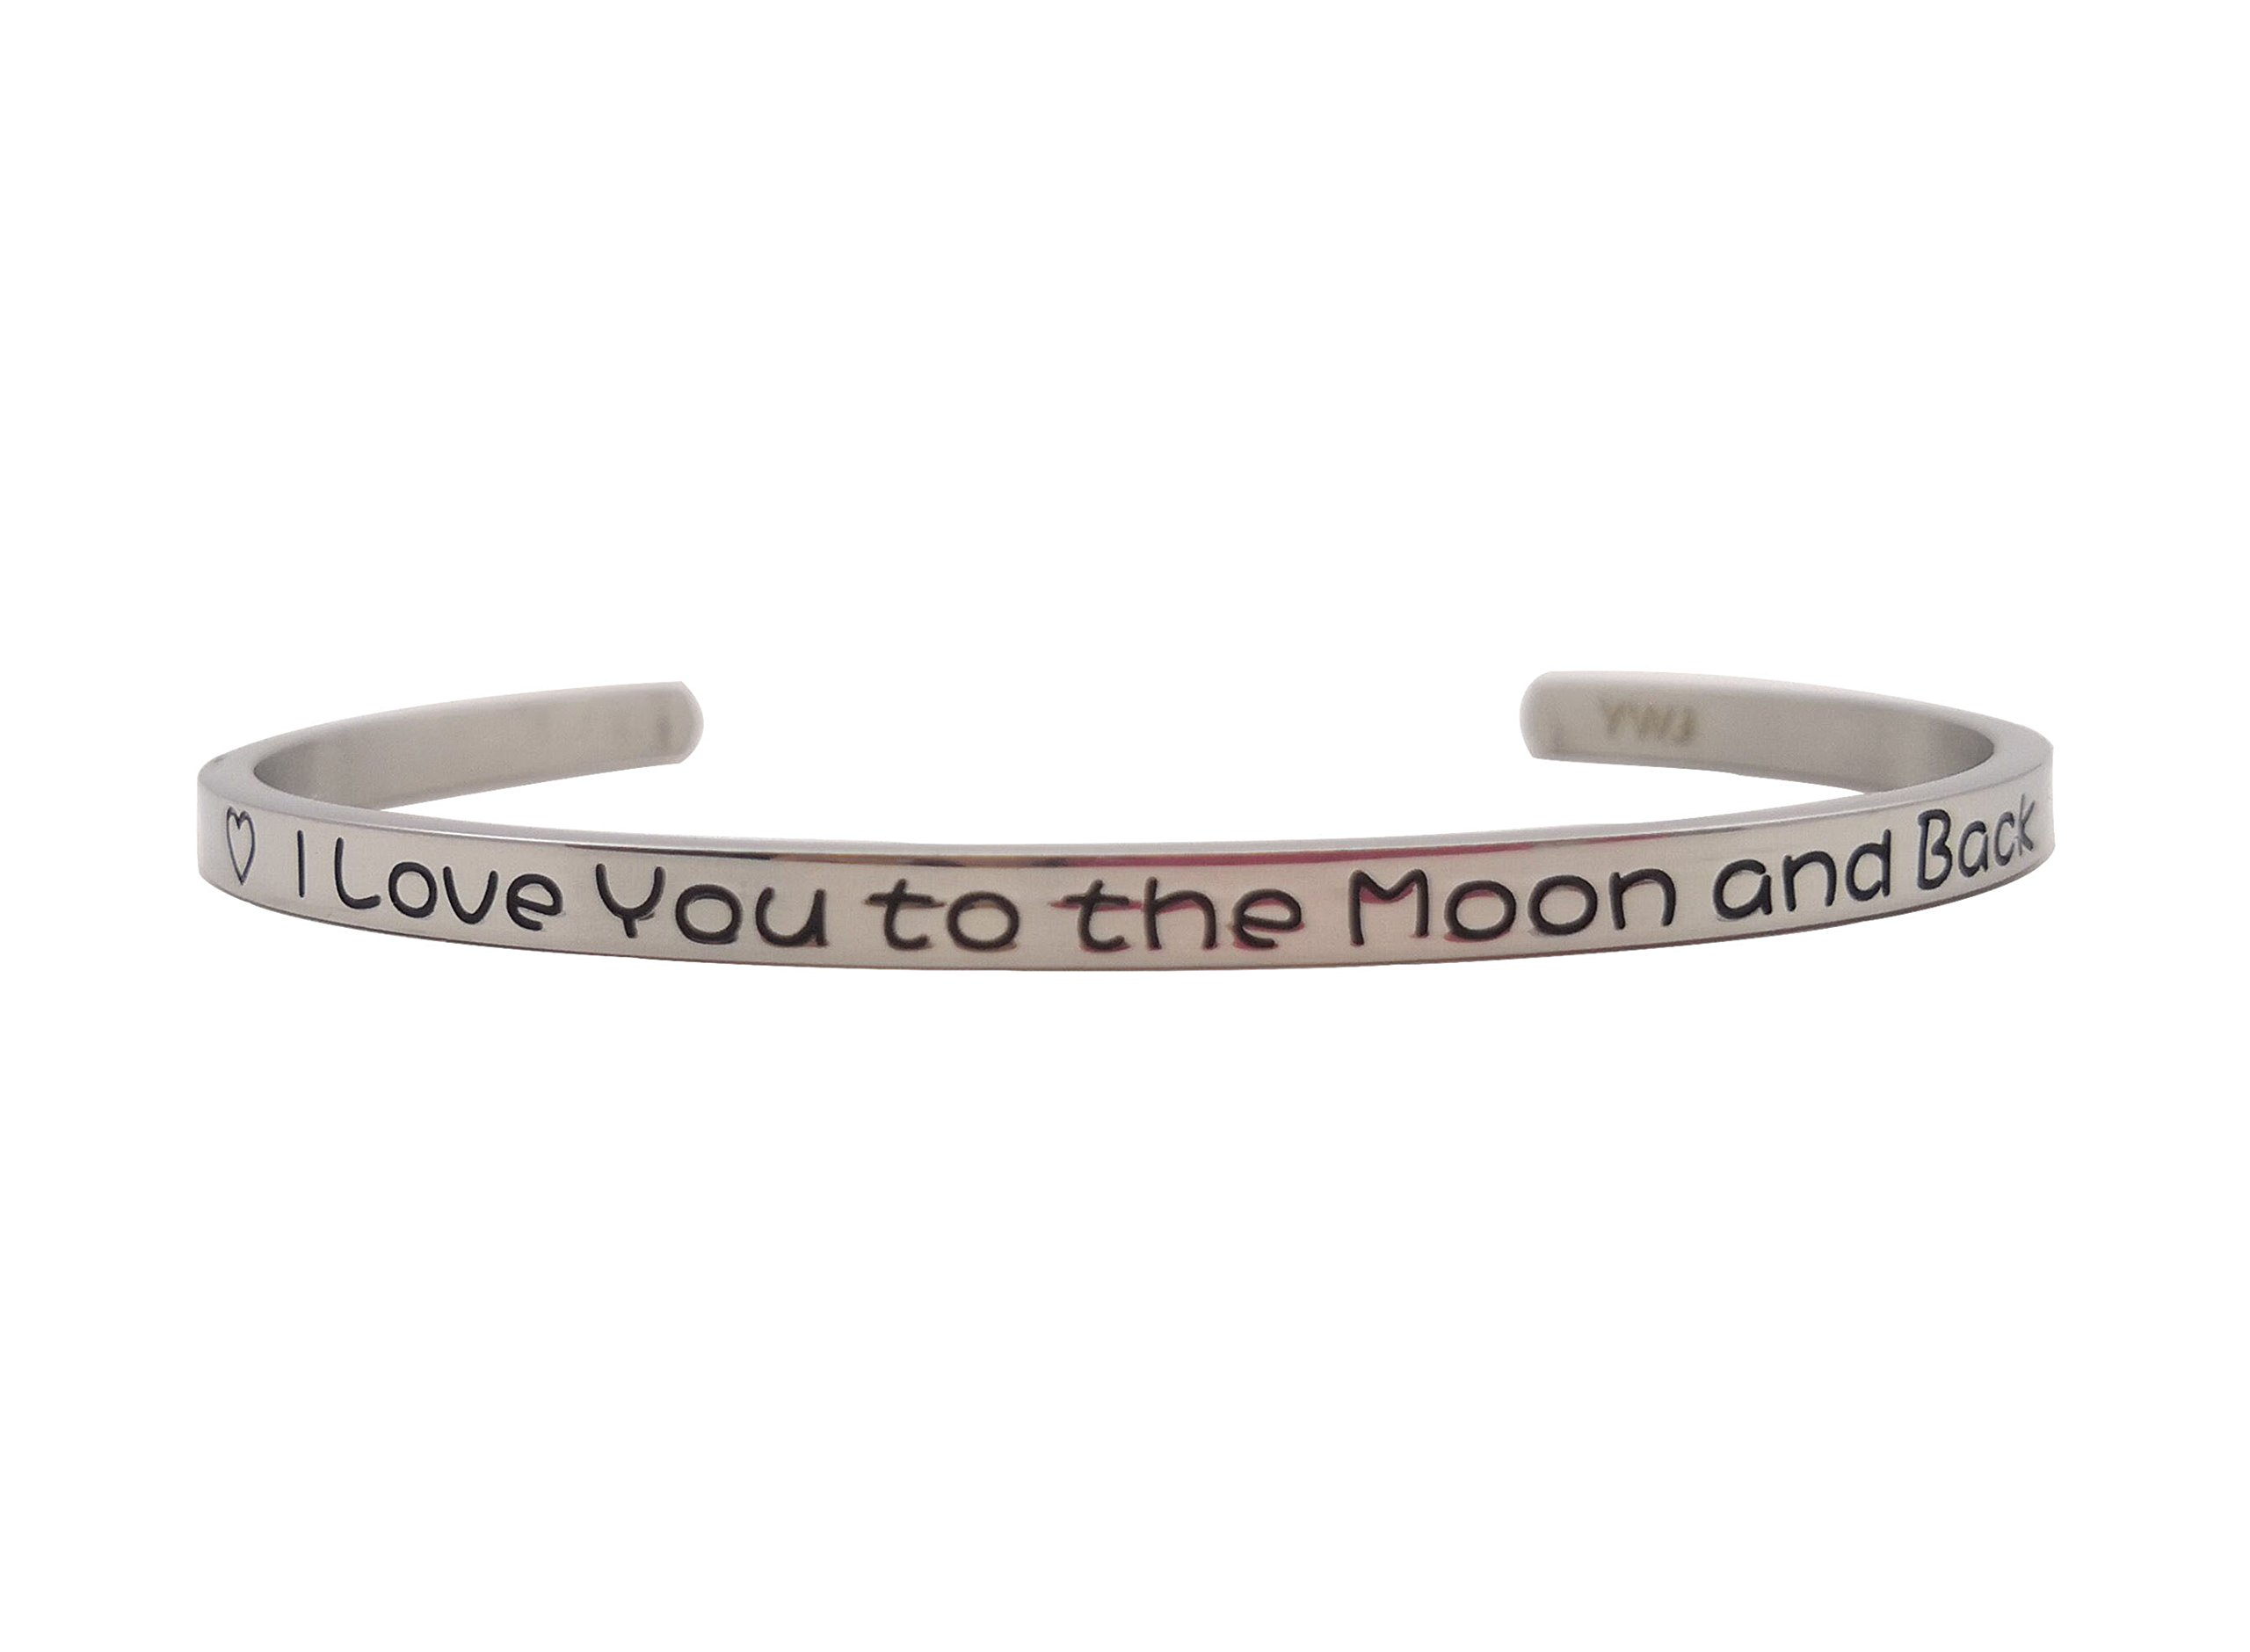 YWJ I Love You to the Moon and Back' Cuff Bangle Love Bracelet for Women Wife Girlfriend Mom Her by YWJ (Image #1)